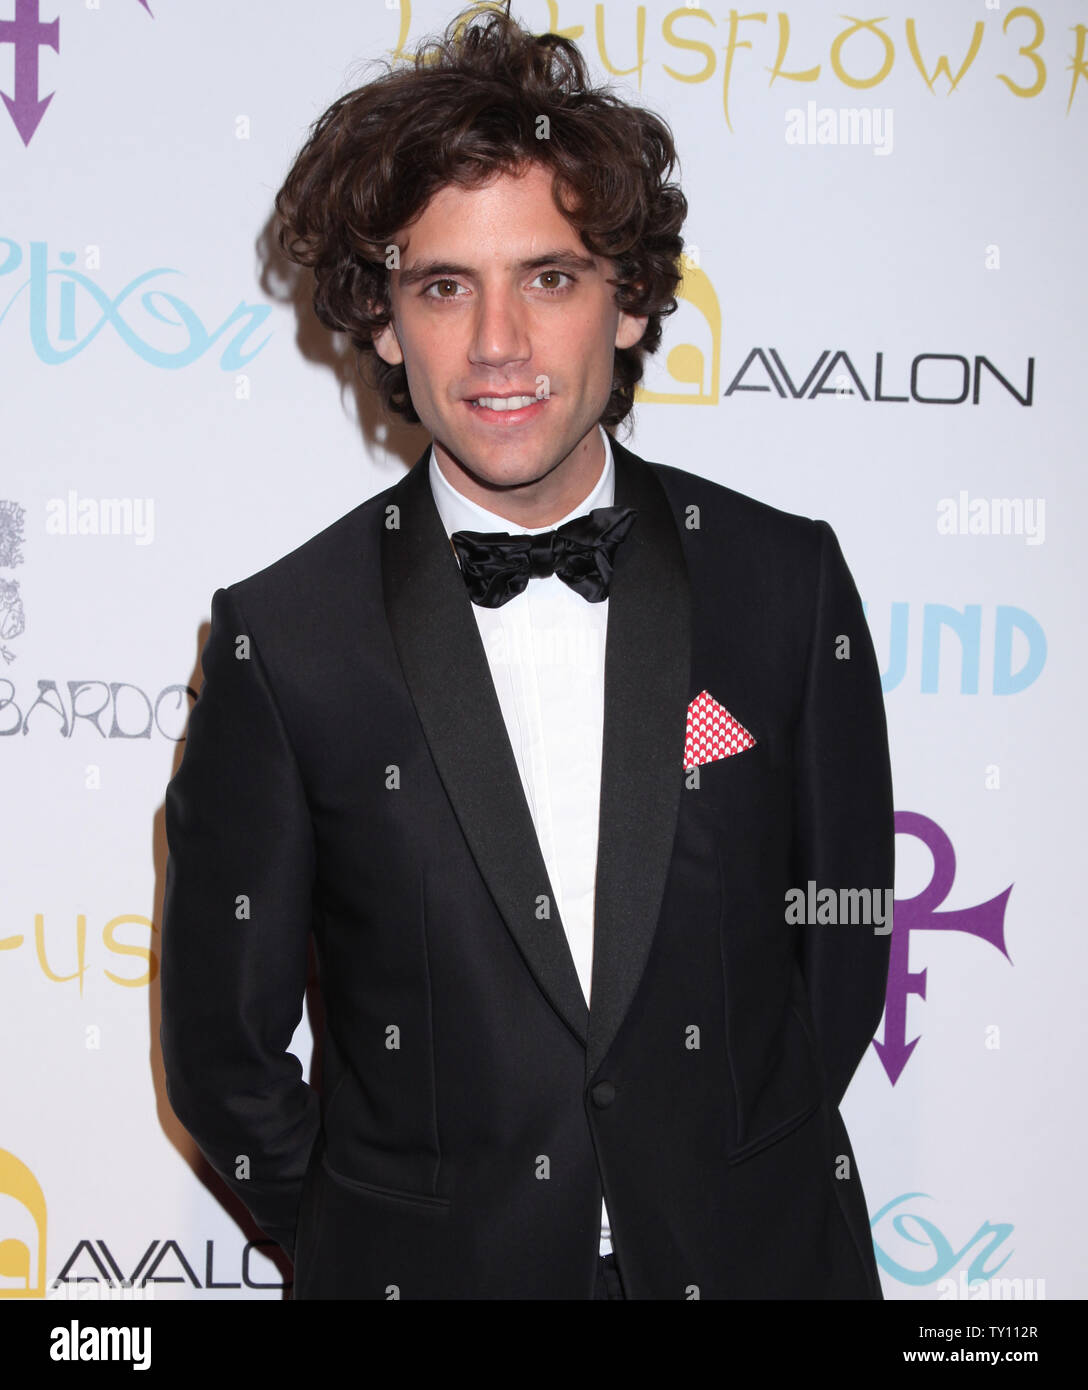 Singer Mika Arrives On The Red Carpet At Prince S Oscar After Party In Hollywood On February 22 2009 The Event During Which Prince Performed Live Followed The 81st Annual Academy Awards Ceremony